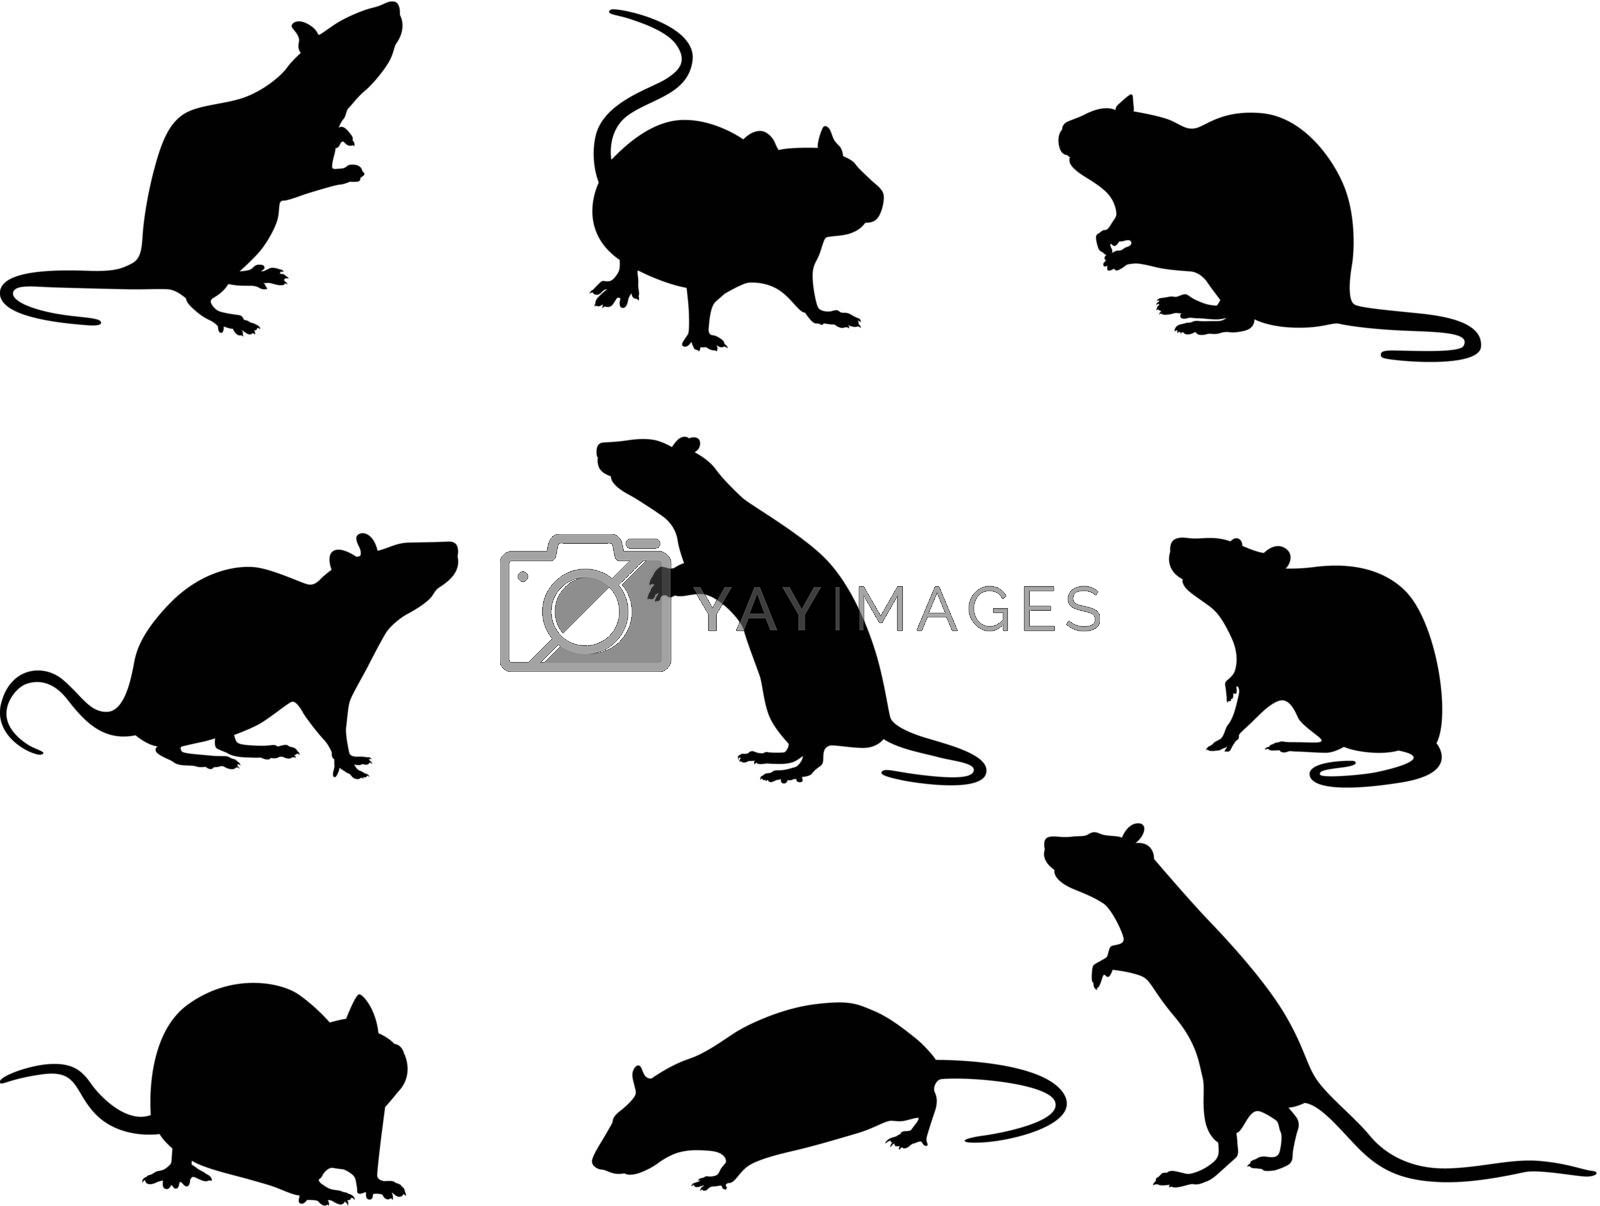 Vector illustration of silhouettes of domestic rats